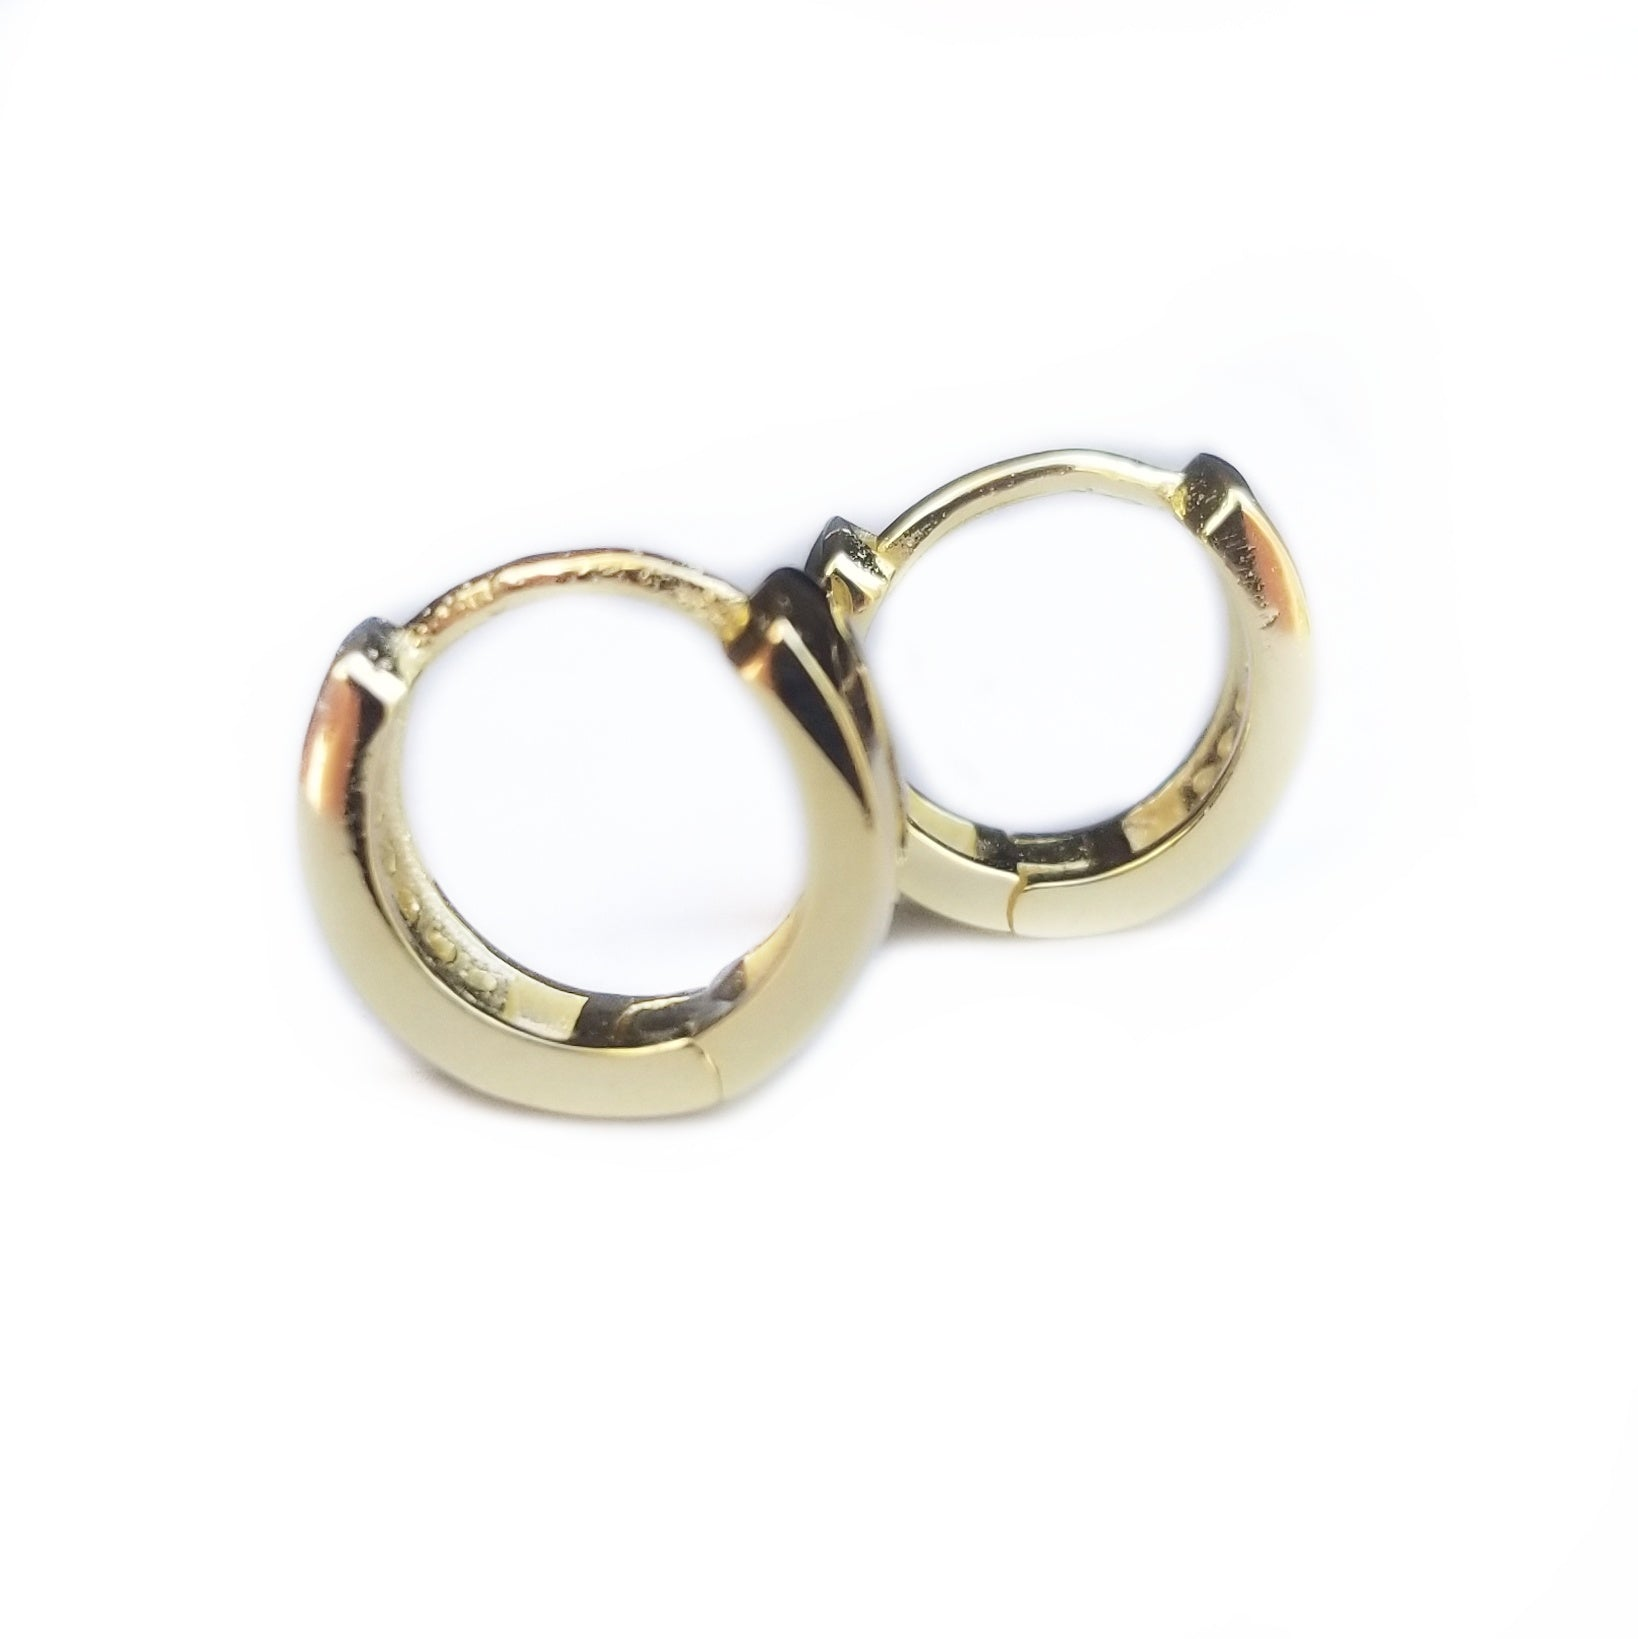 Huggy style earring sterling silver gold plated